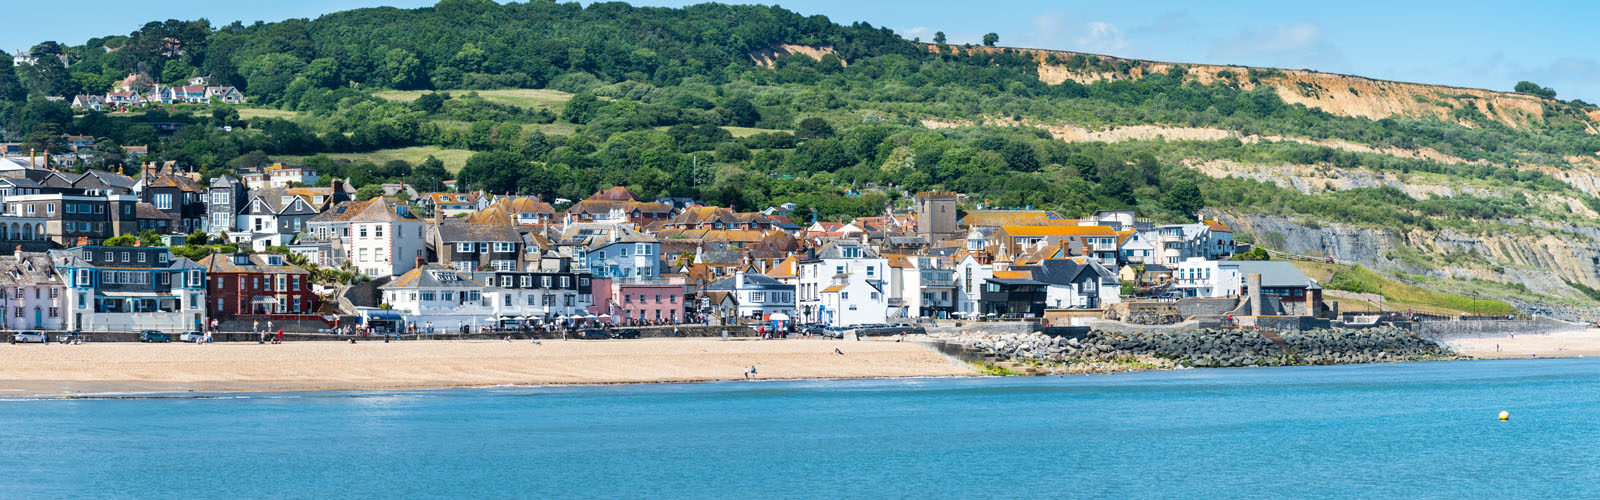 Luxury Holiday Cottages in Lyme Regis.